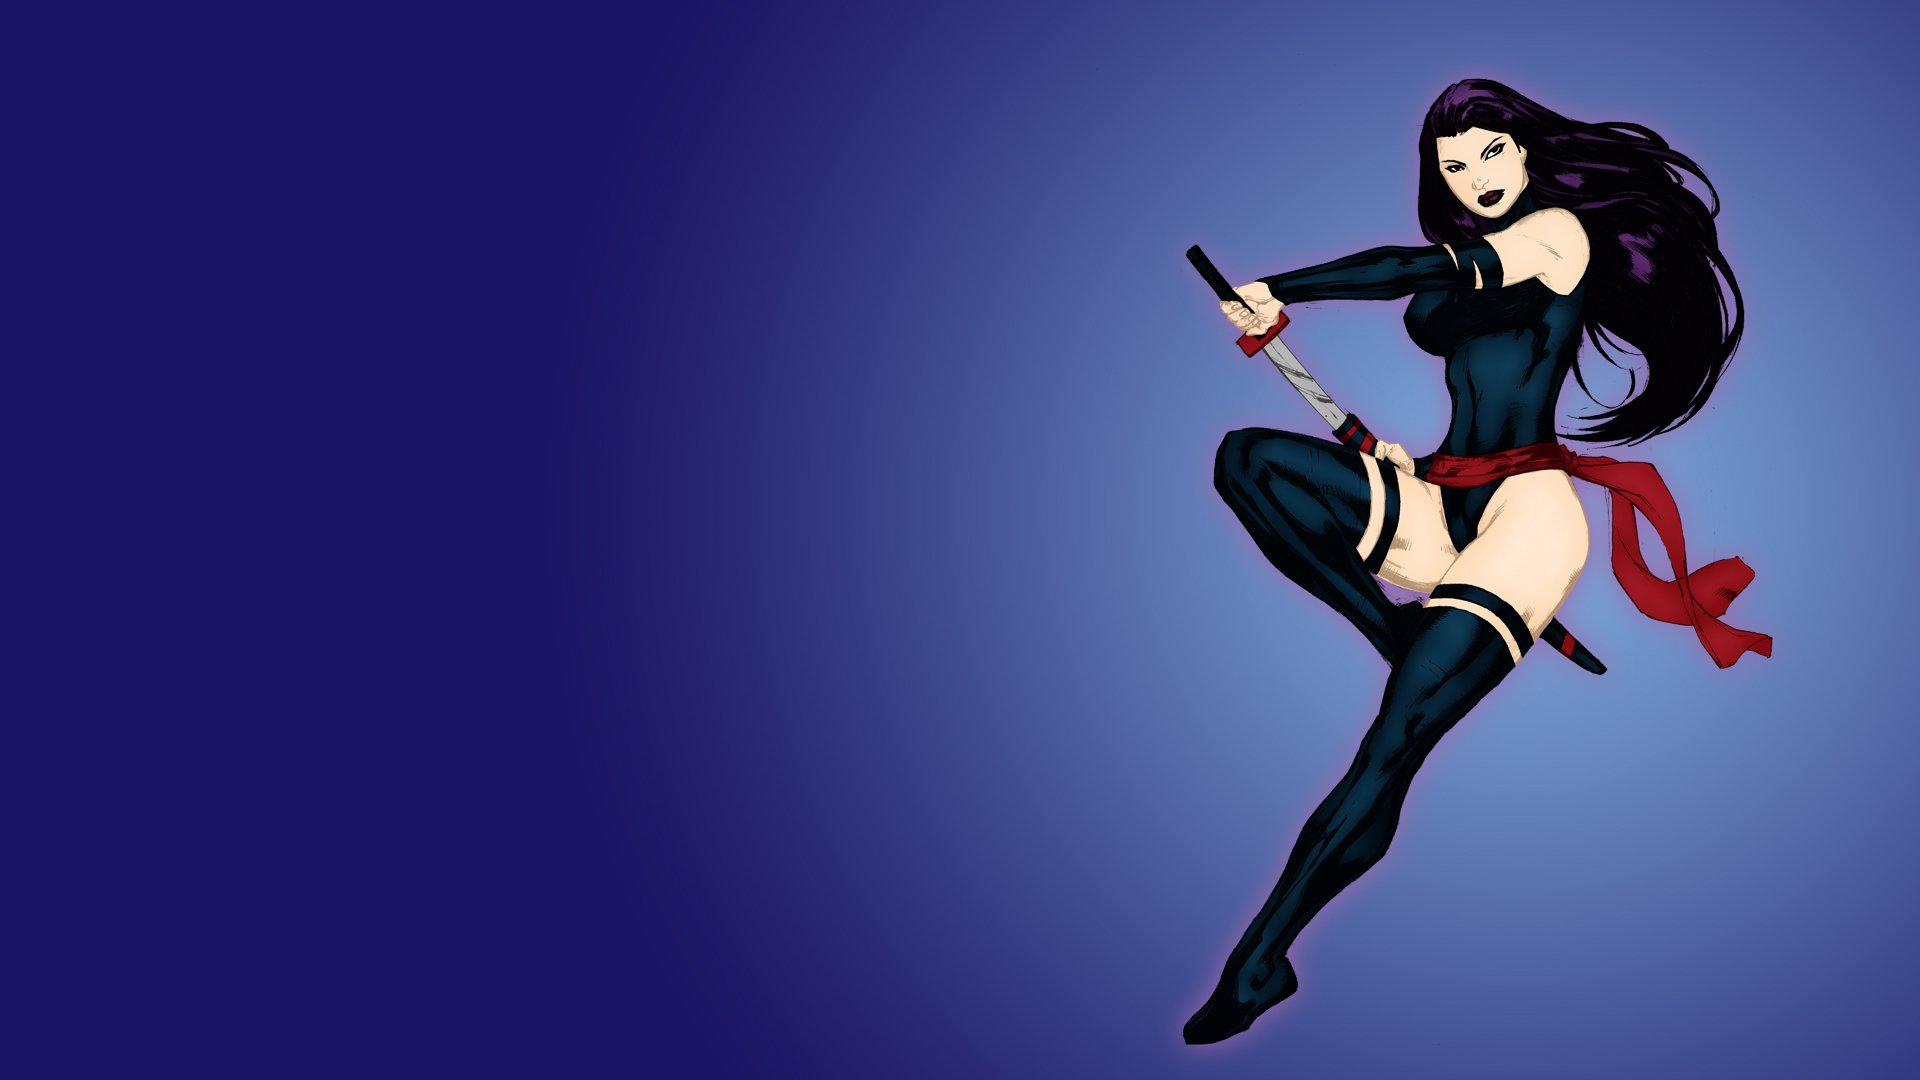 Psylocke Elizabeth Betsy Braddock Full HD Wallpaper And